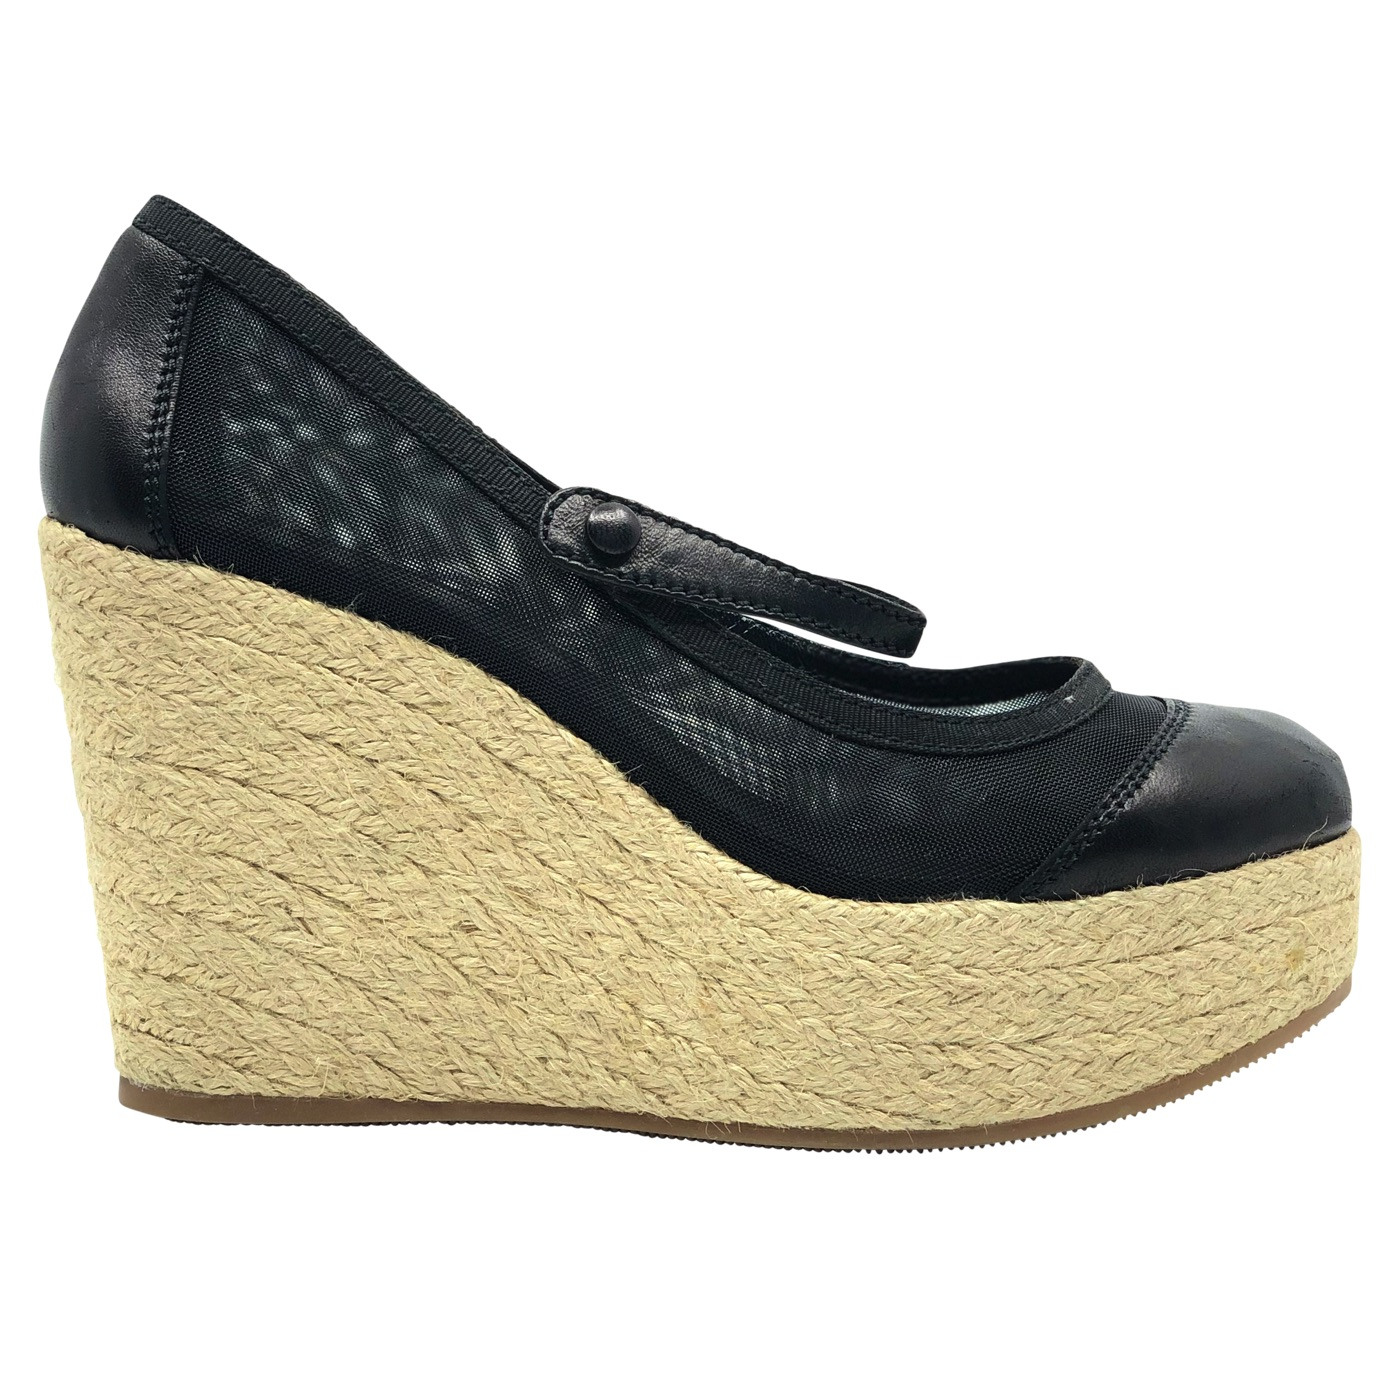 pretty nice online for sale new appearance Chadi Luxury | Fendi Black Leather Canvas Wedges